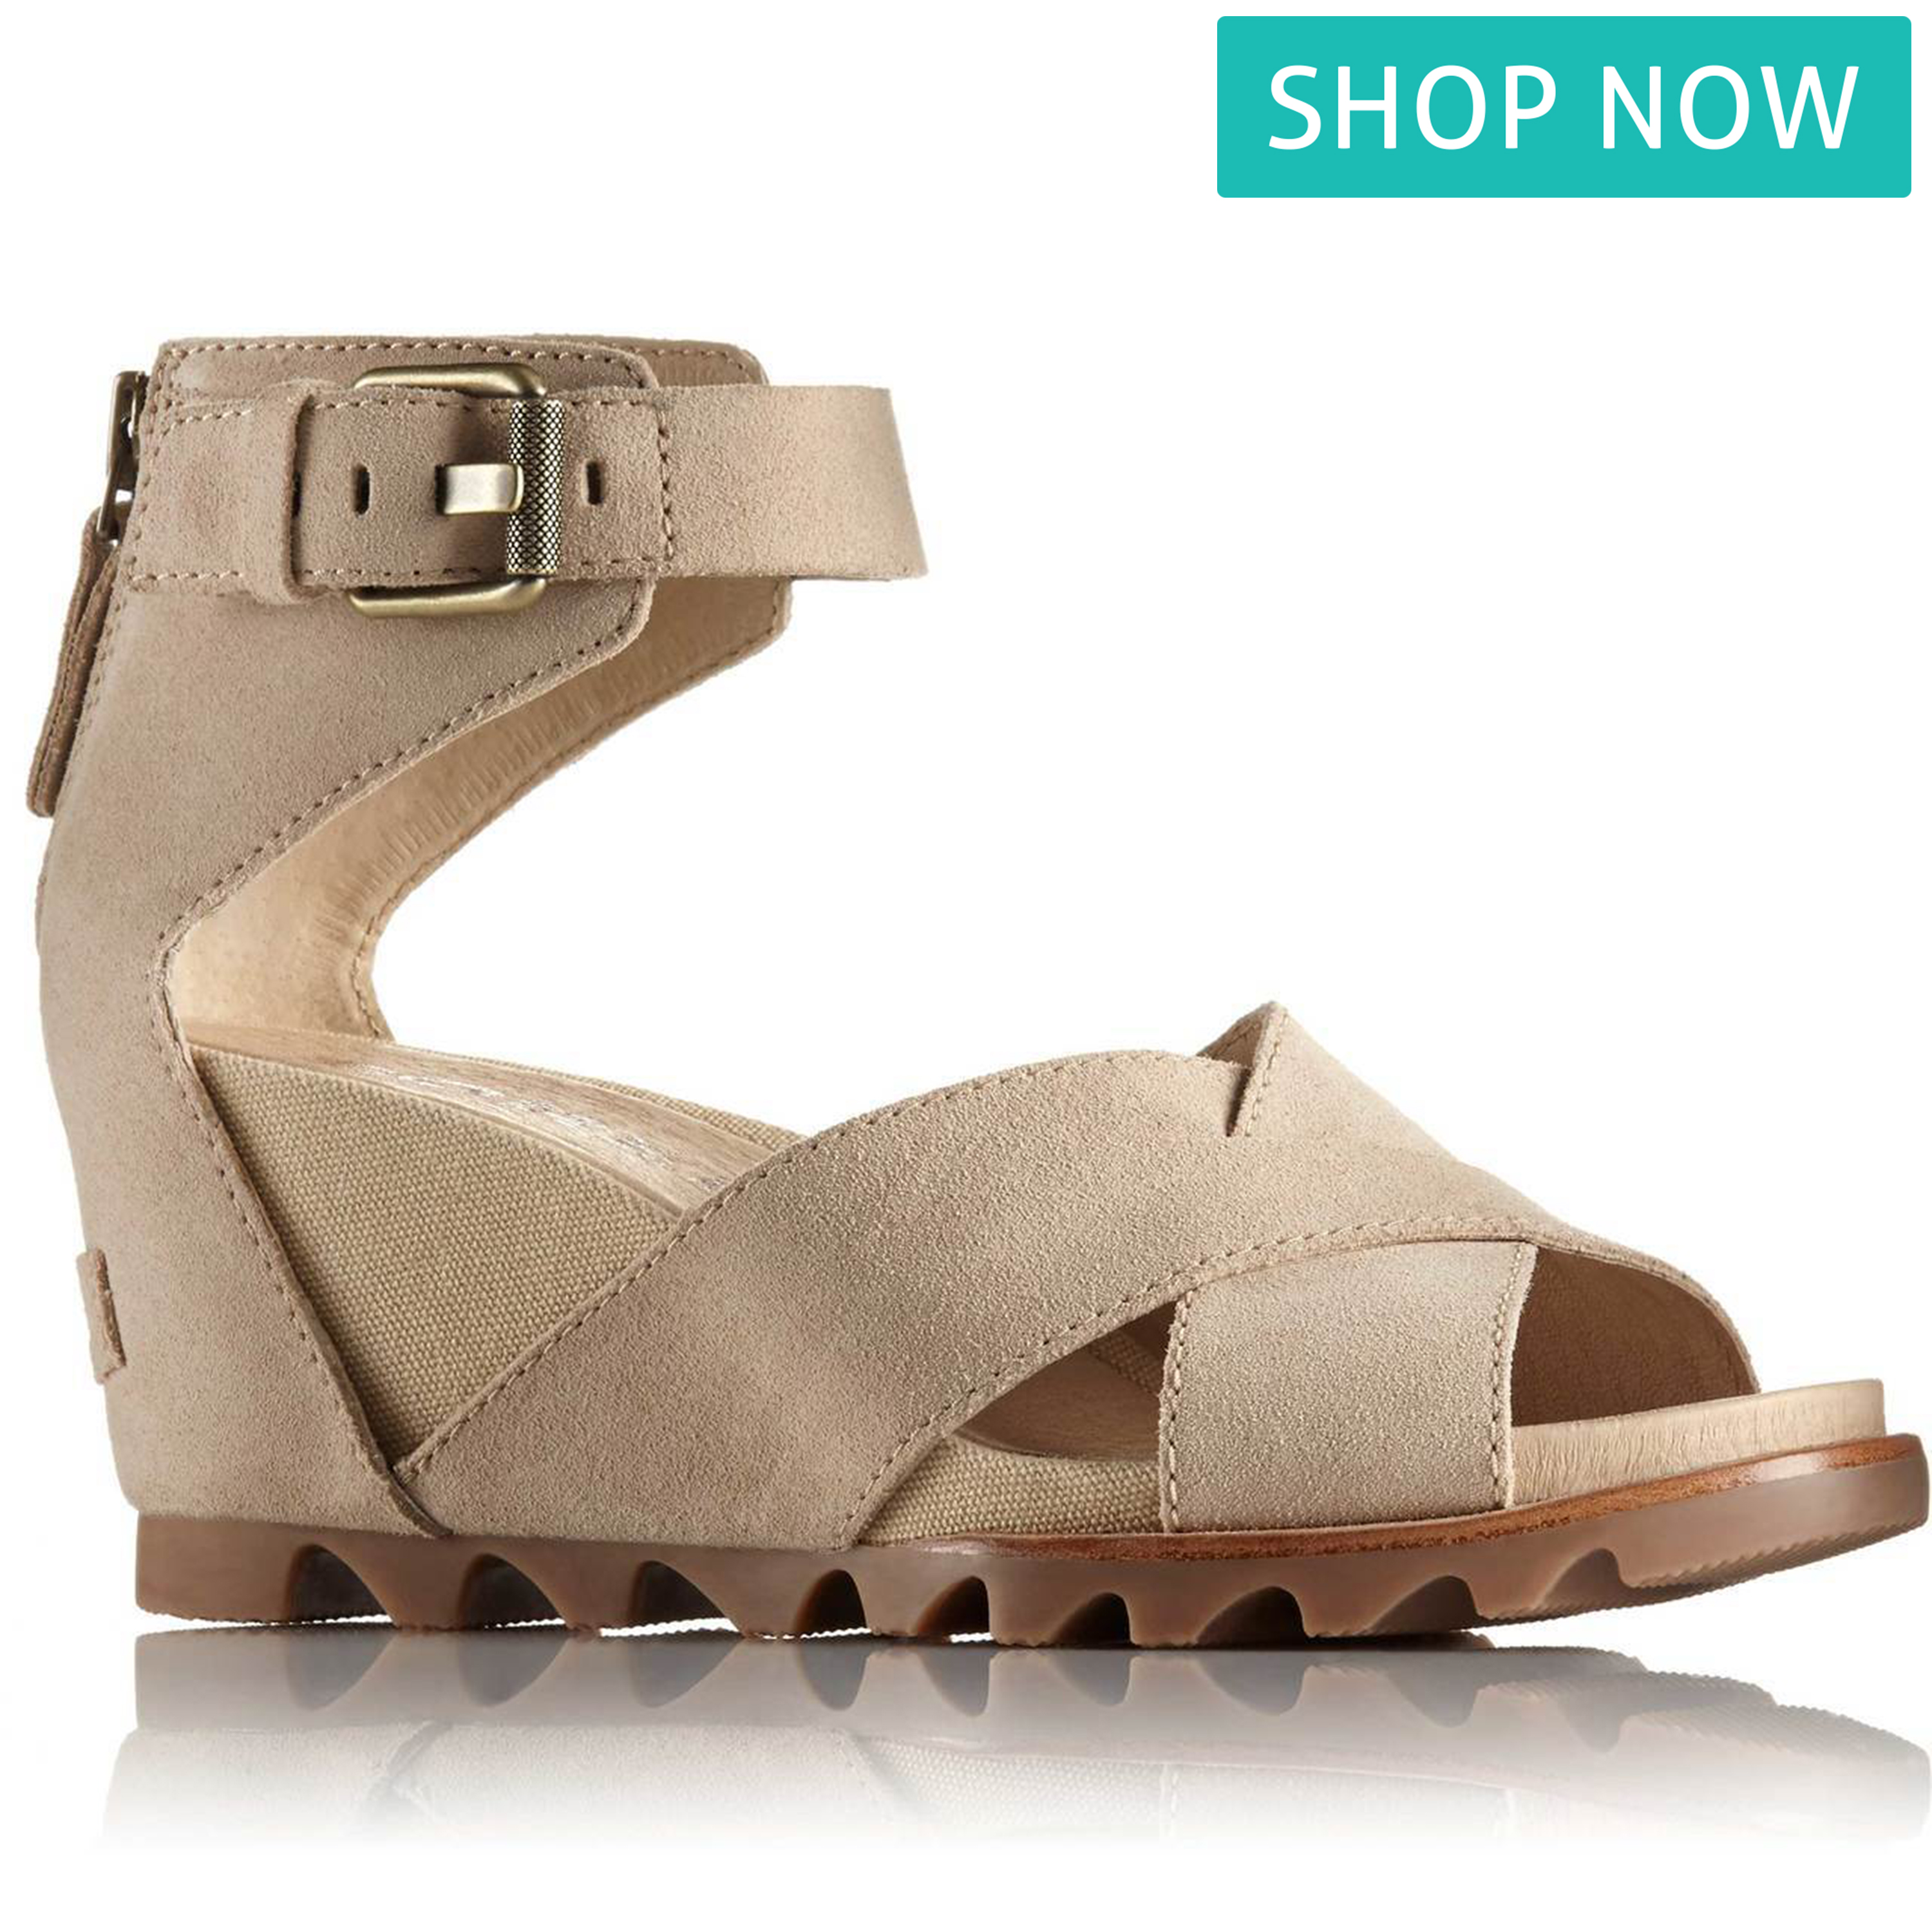 f2f52178b8a4 Left  Clarks Unstructured Women s Un Plaza Sling in Black Nubuck. Also  available in Peach Nubuck and Warm Grey Nubuck. Right  Sorel Joanie Sandal  II in ...